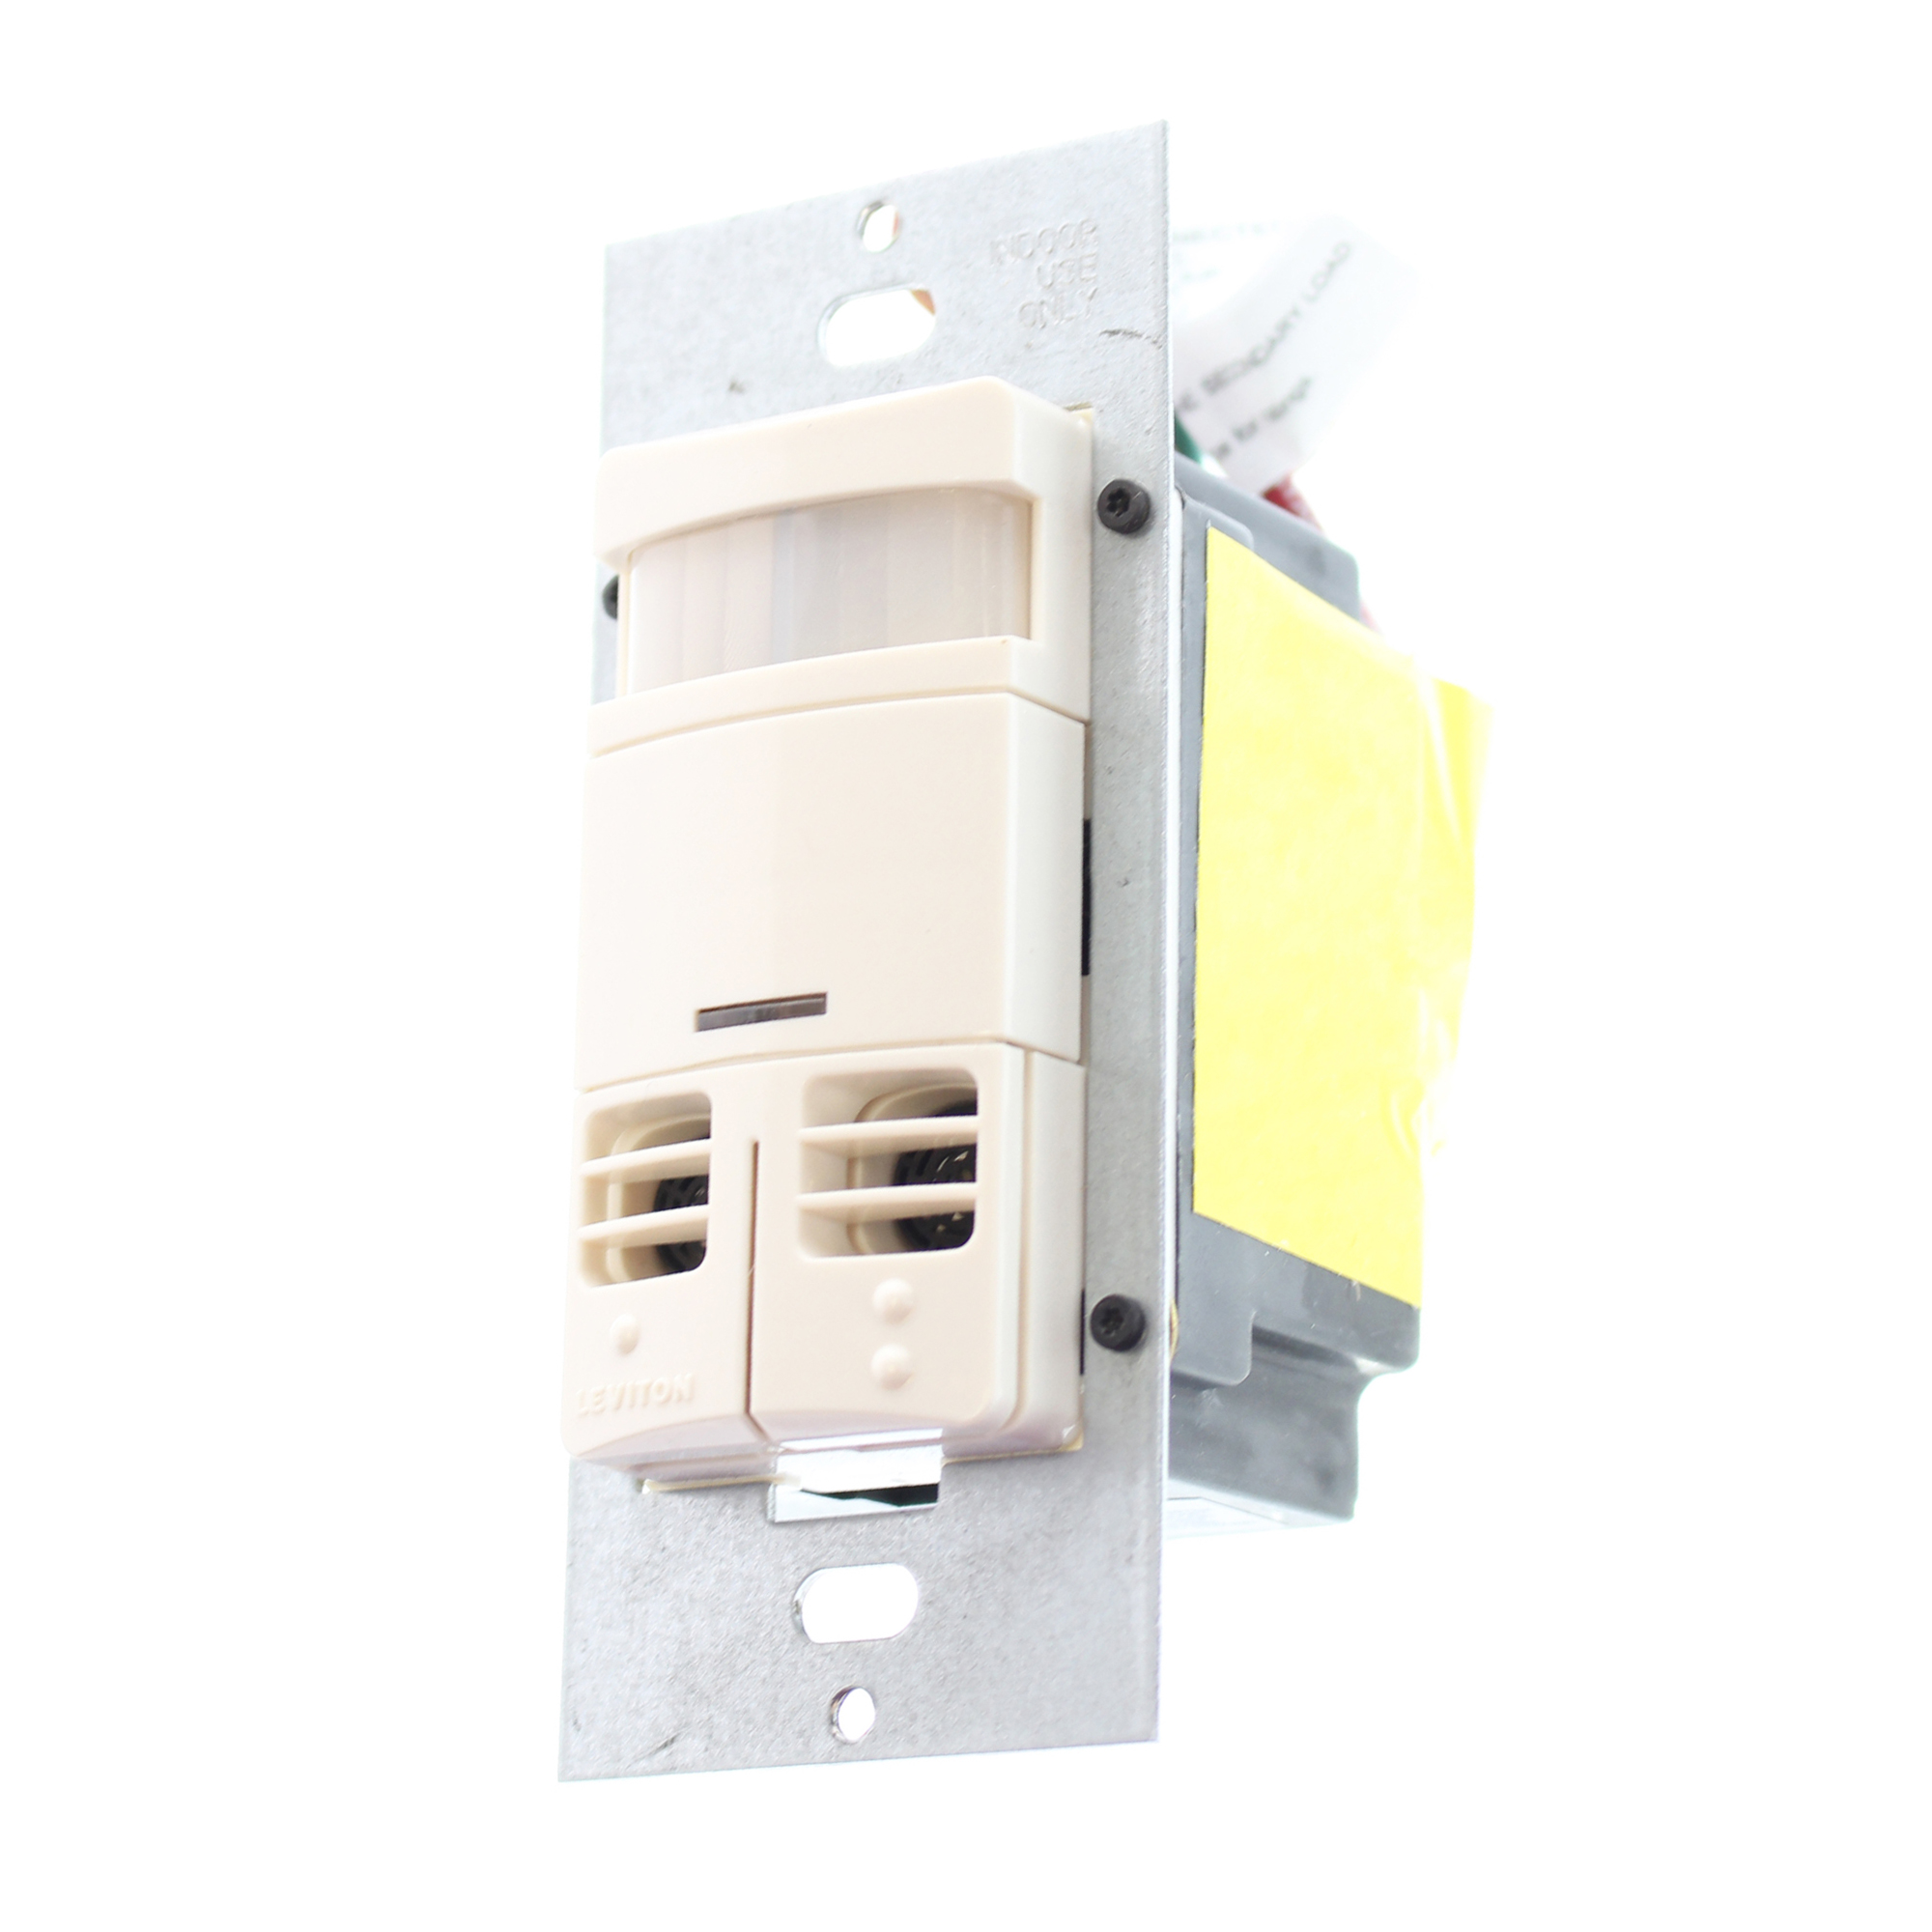 LEVITON OSSMD-MDT DUAL-TECH WALL SWITCH OCCUPANCY SENSOR, 120/277V ...